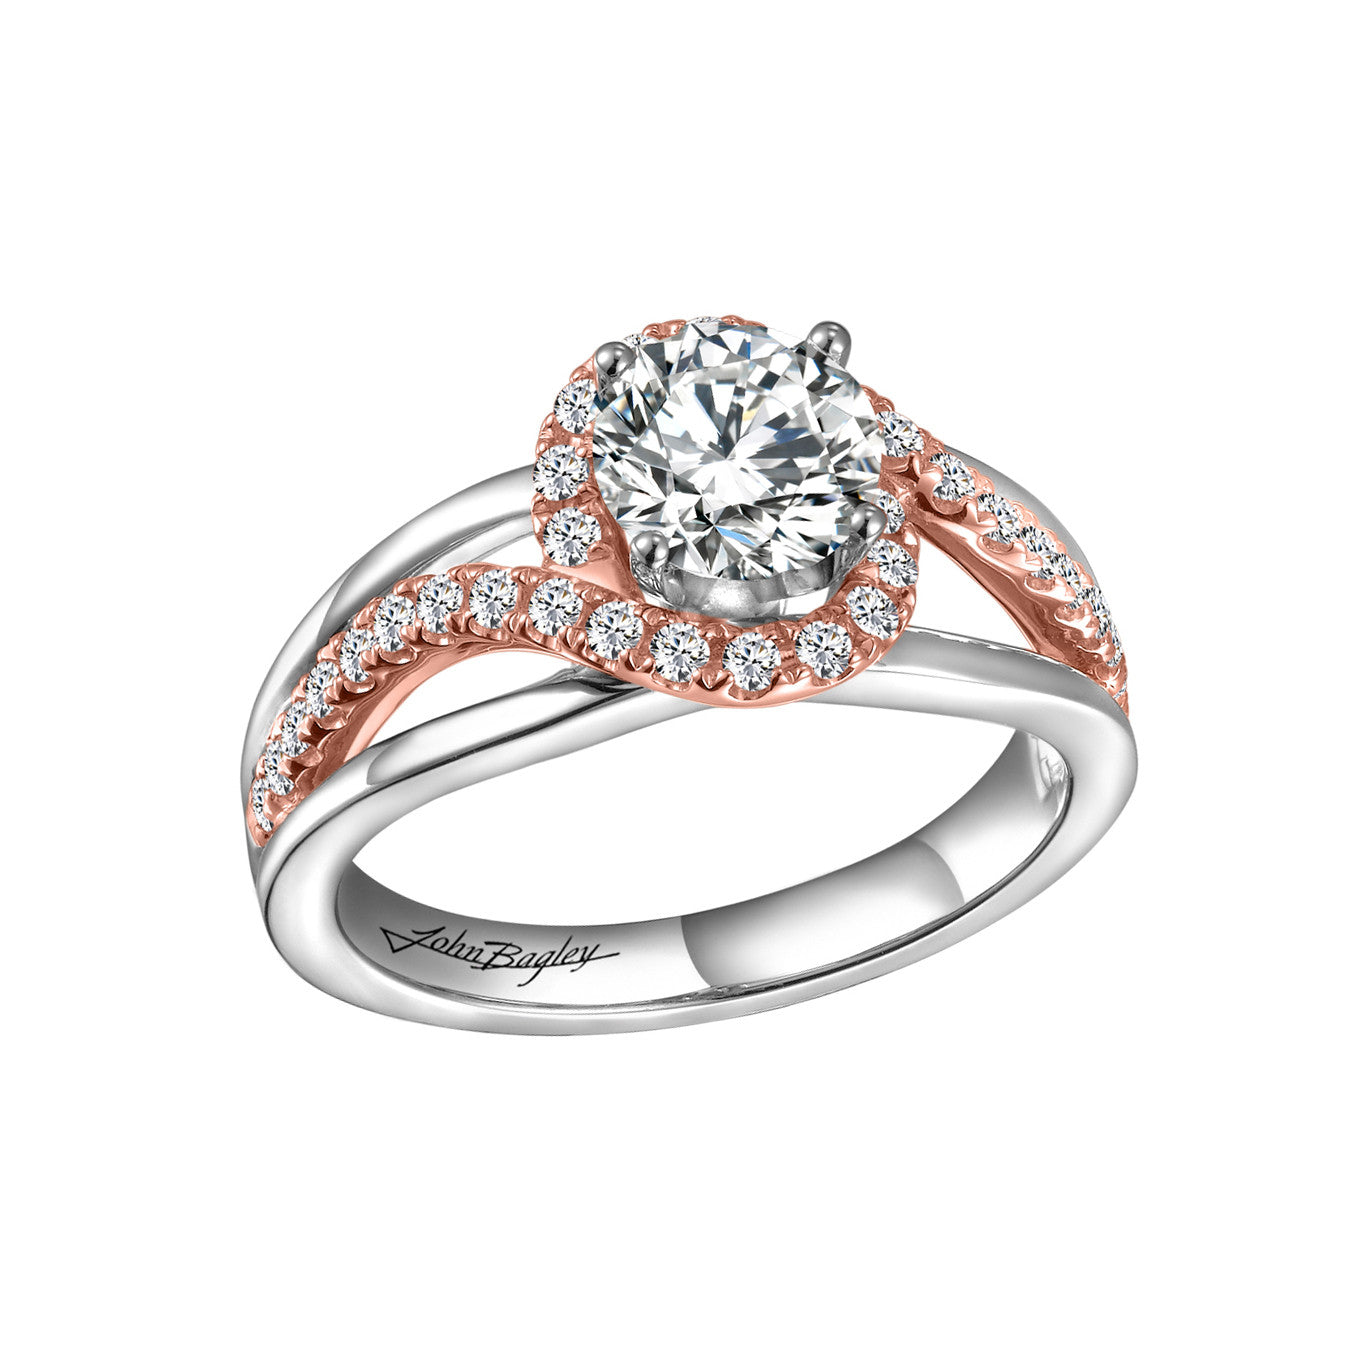 14K White and Rose Gold Halo Engagement Ring